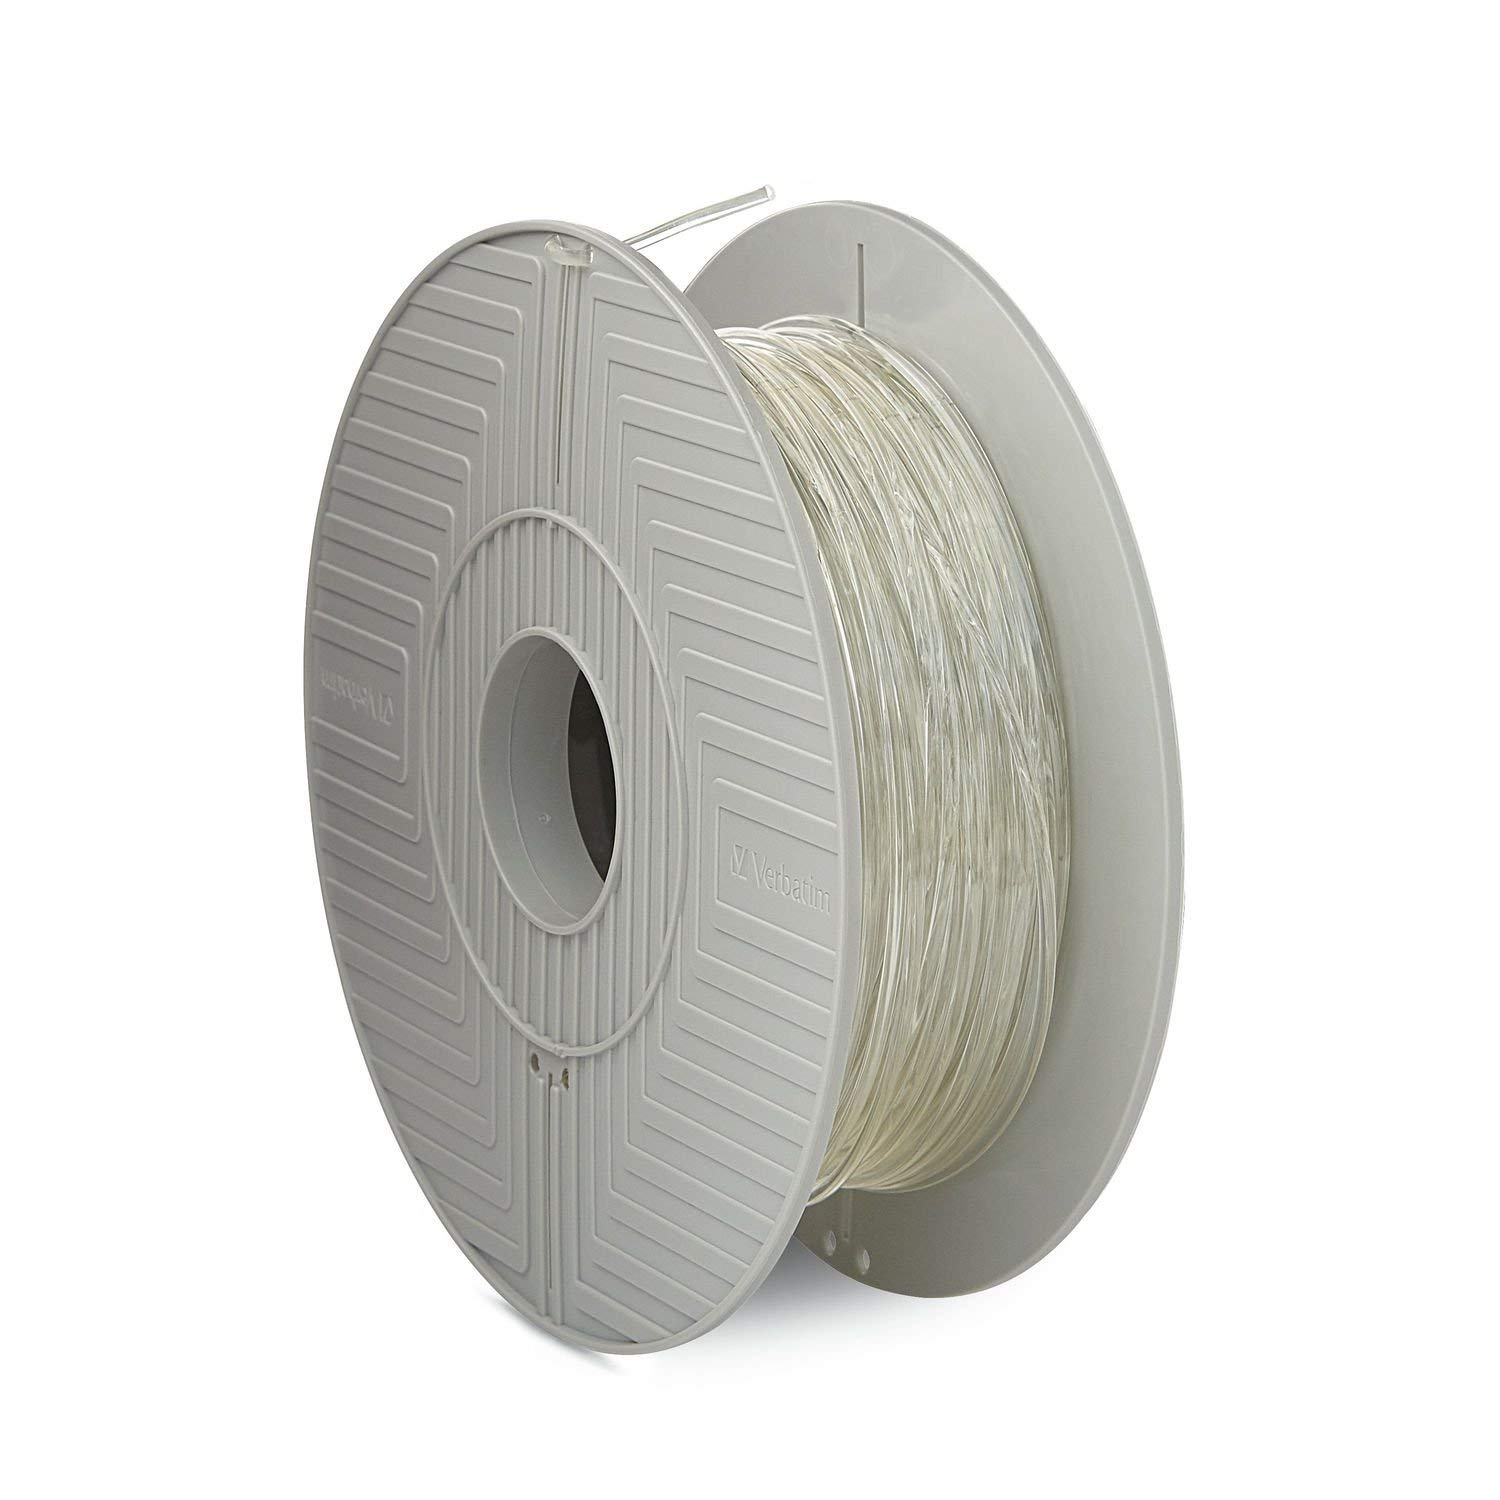 verbatim pet 3d printing filament petg filament petg 3d printer filament